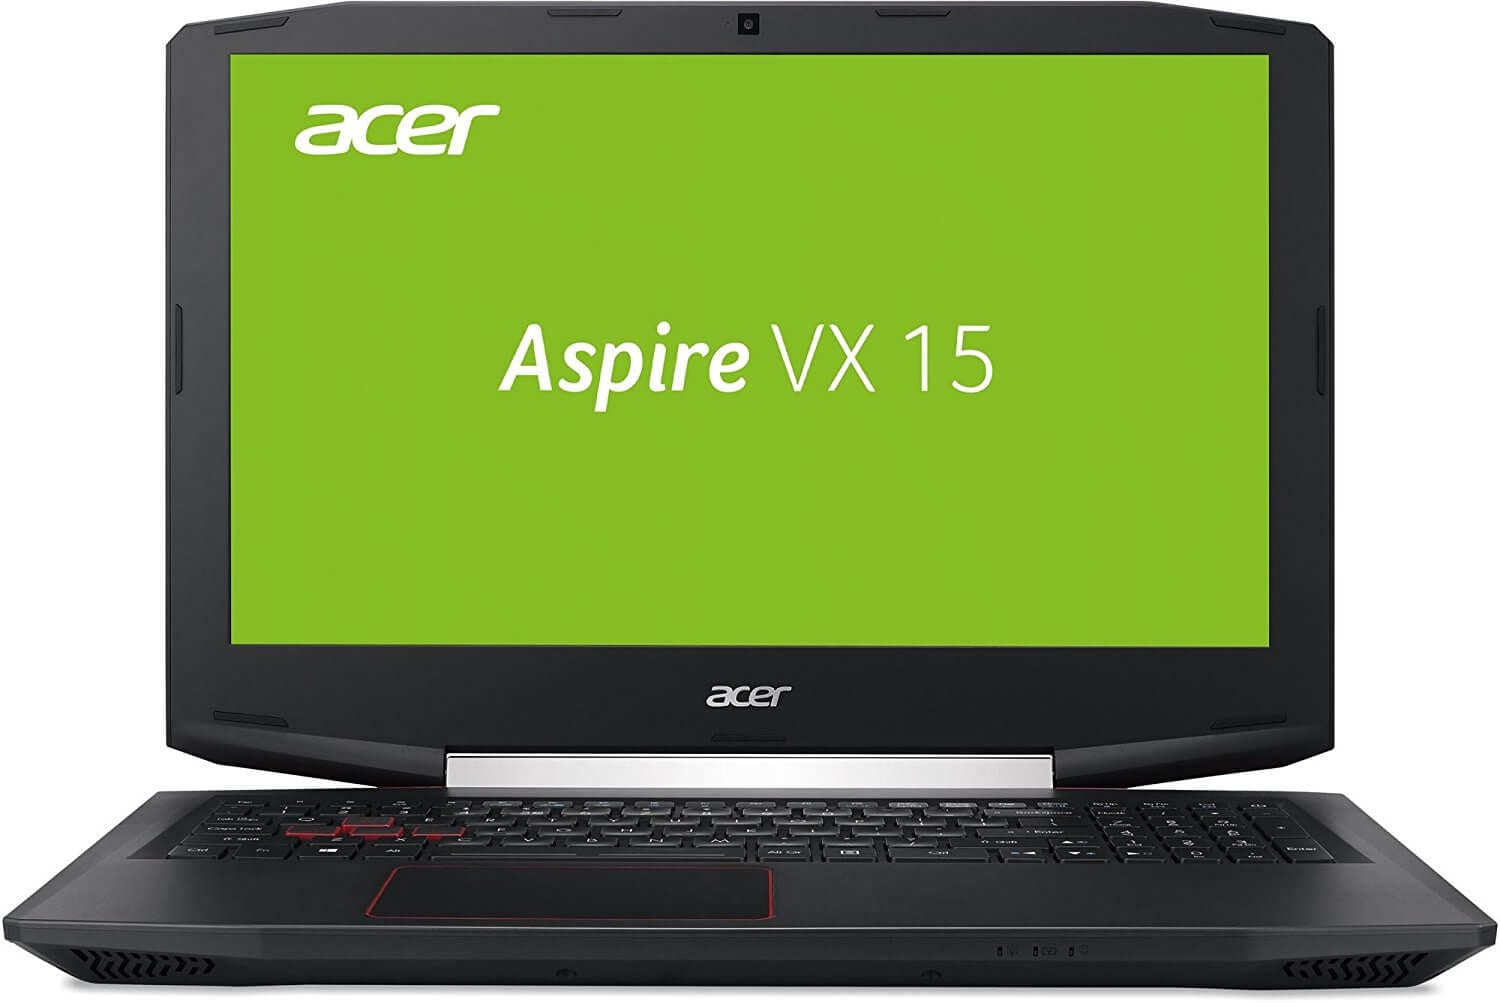 Acer Aspire VX 15 Gaming Laptop Cheap Gaming Laptop under 900